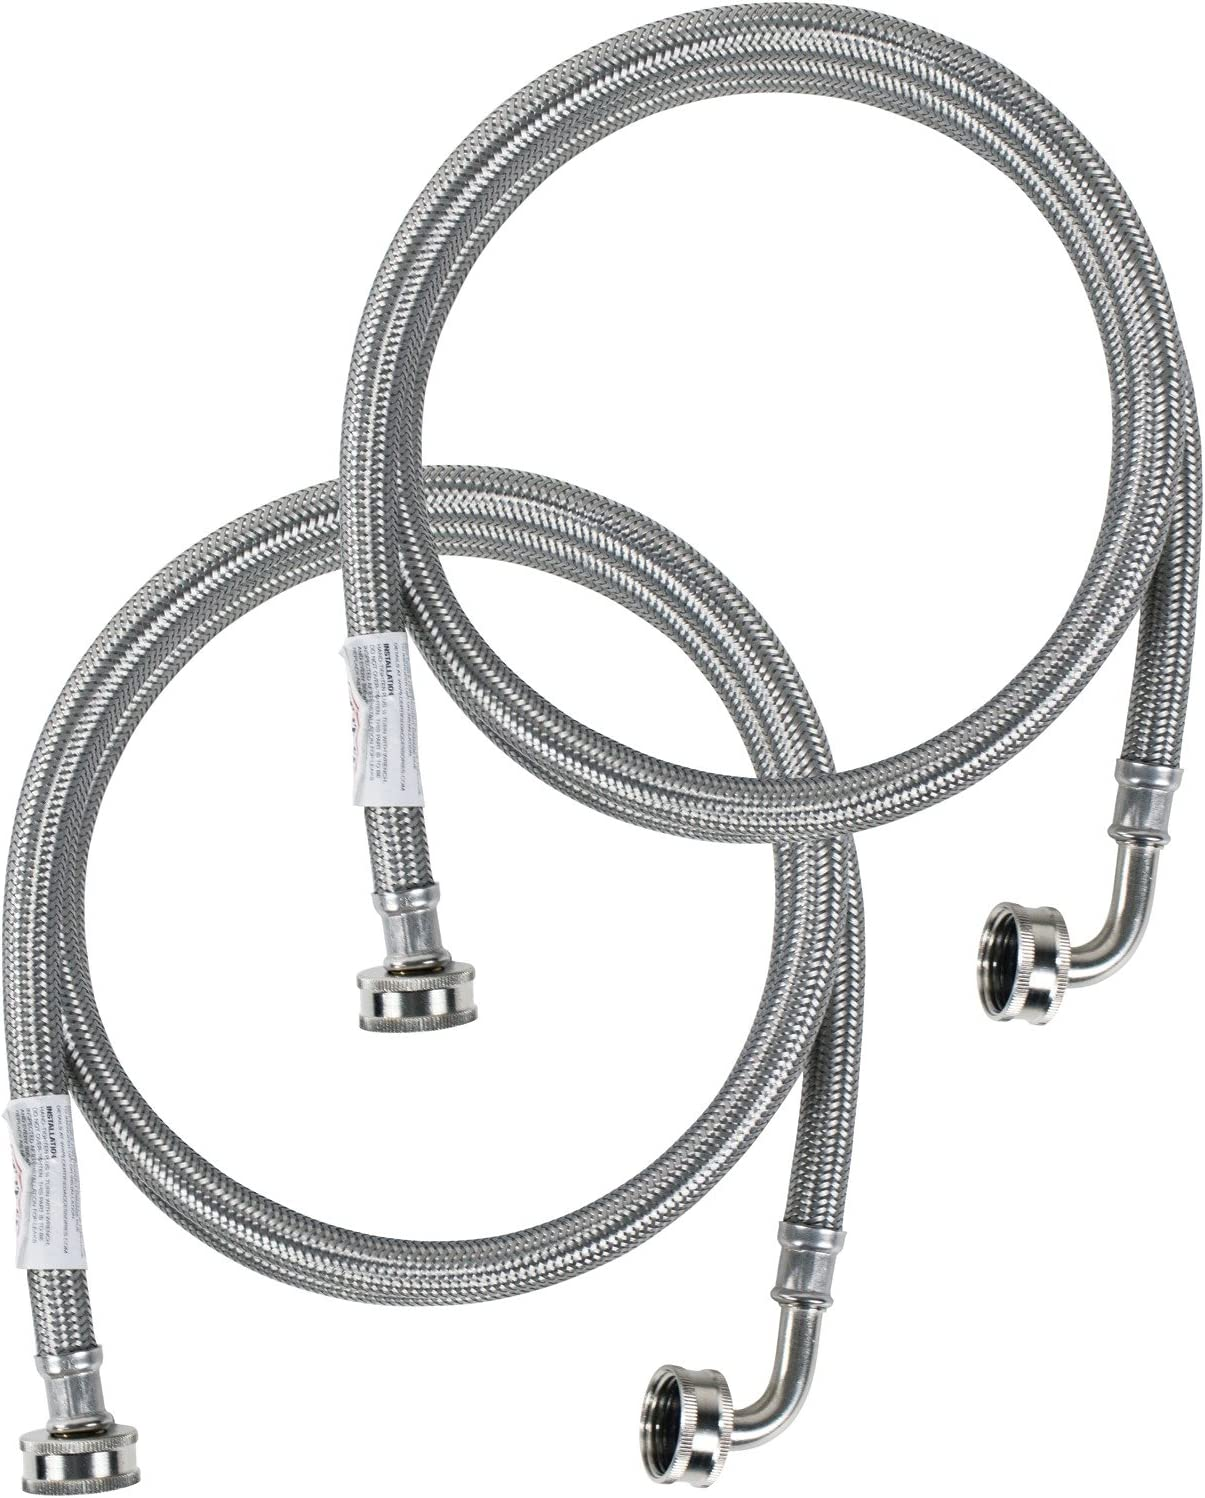 Certified Appliance Accessories Washing Machine Hose with 90 Degree Elbow (2 Pack), Hot and Cold Water Supply Lines, 4 Feet, PVC Core with Premium Braided Stainless Steel in Protective Clamshell Pkg.